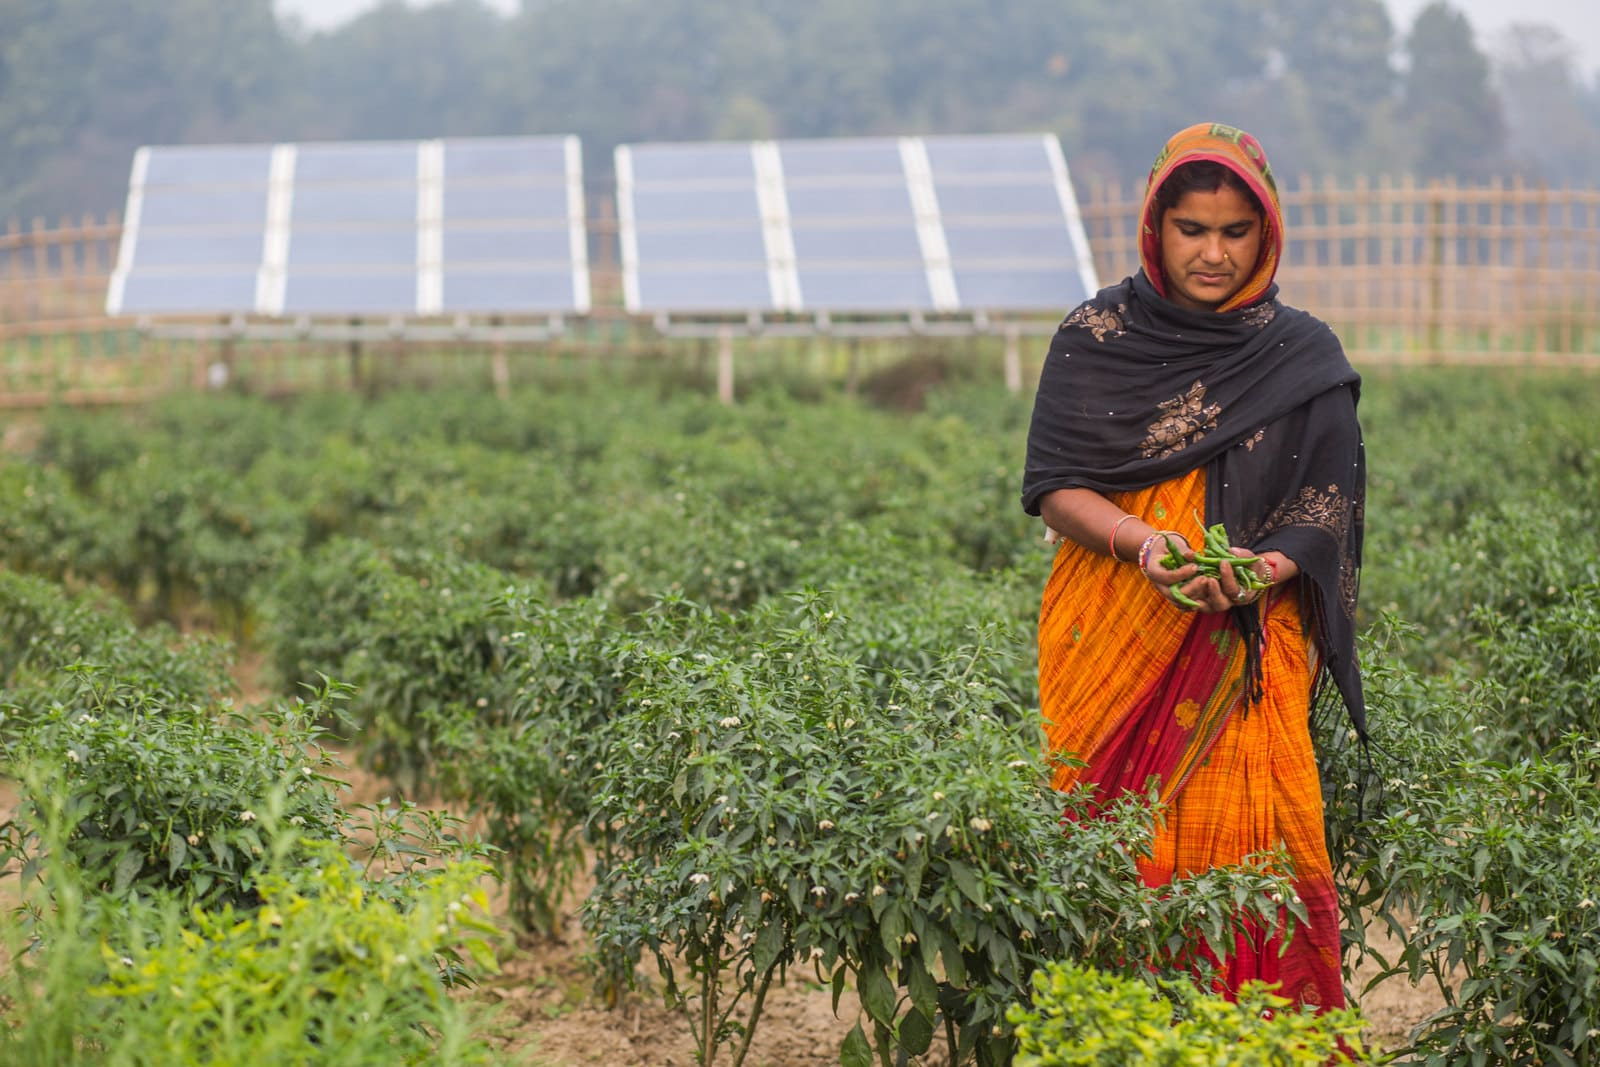 20 Transforming Agrifood Systems in South Asia (TAFSSA)